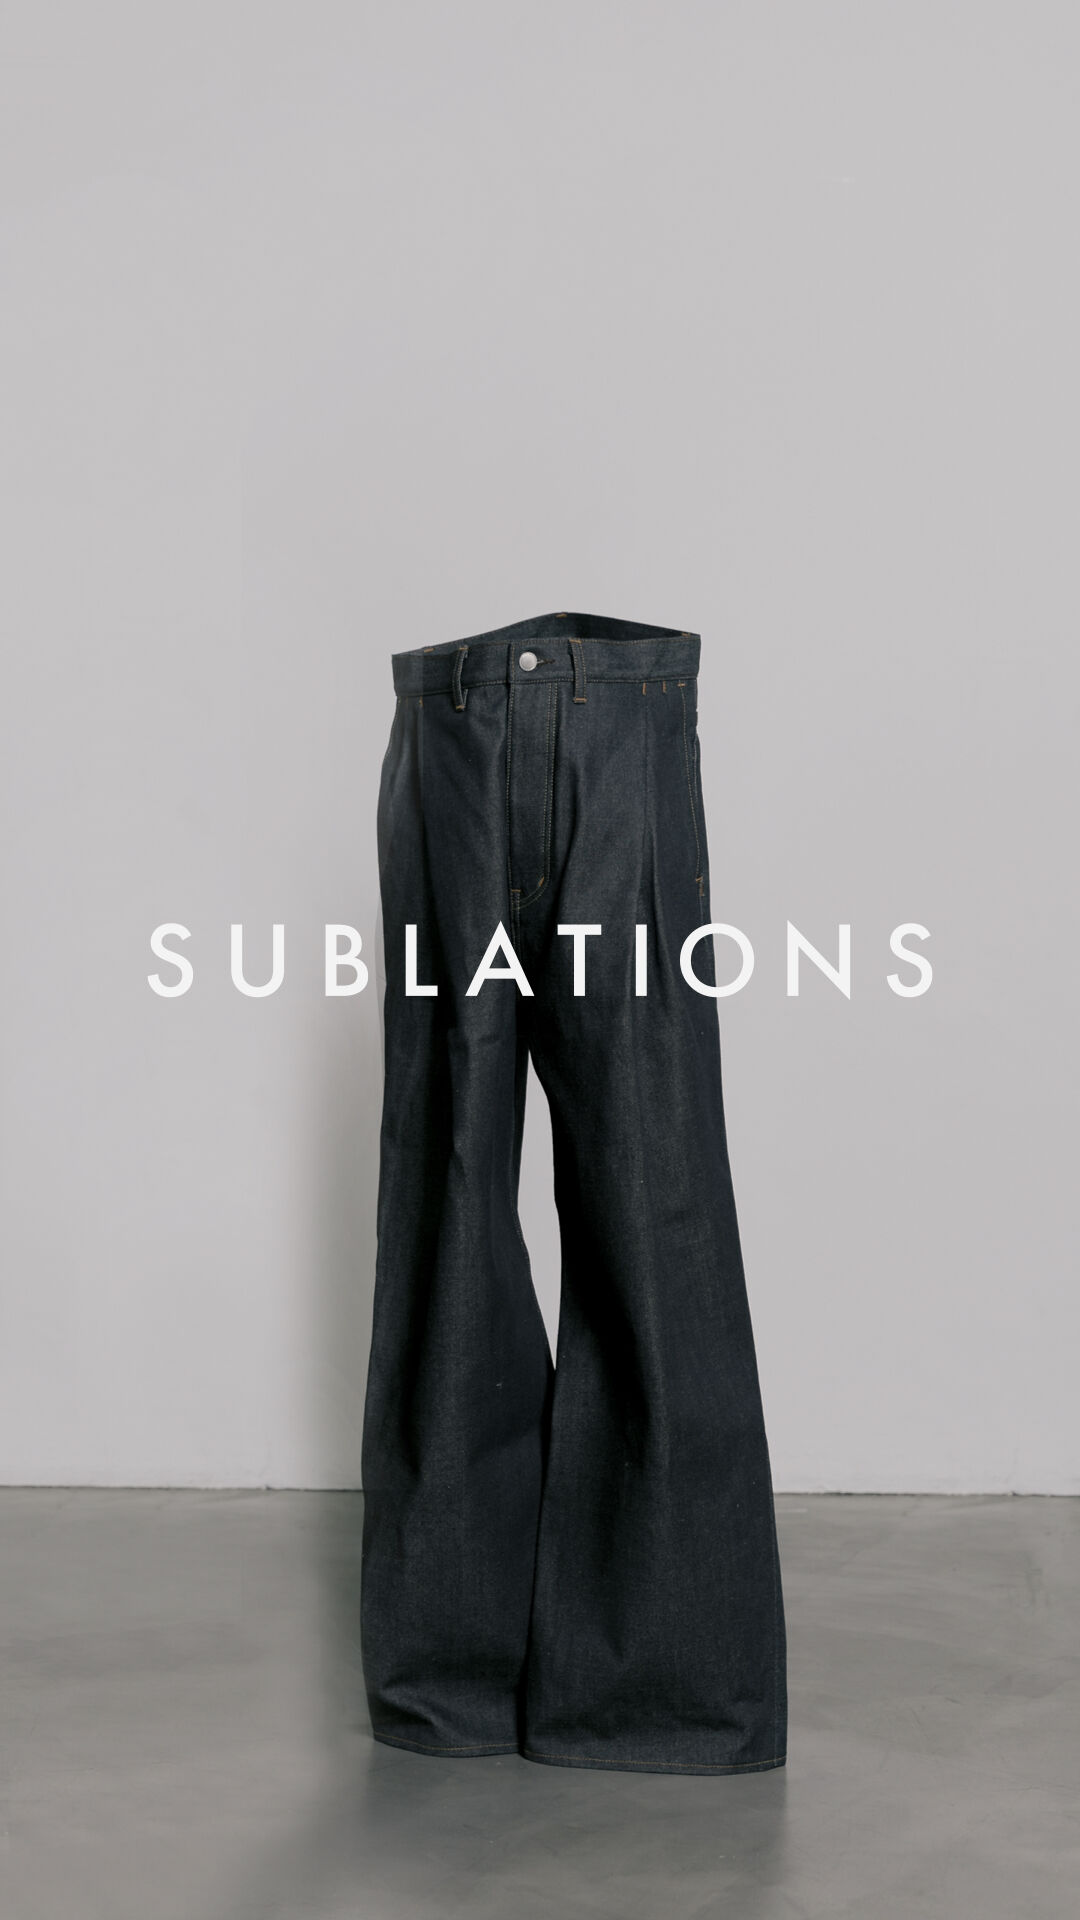 SUBLATIONS